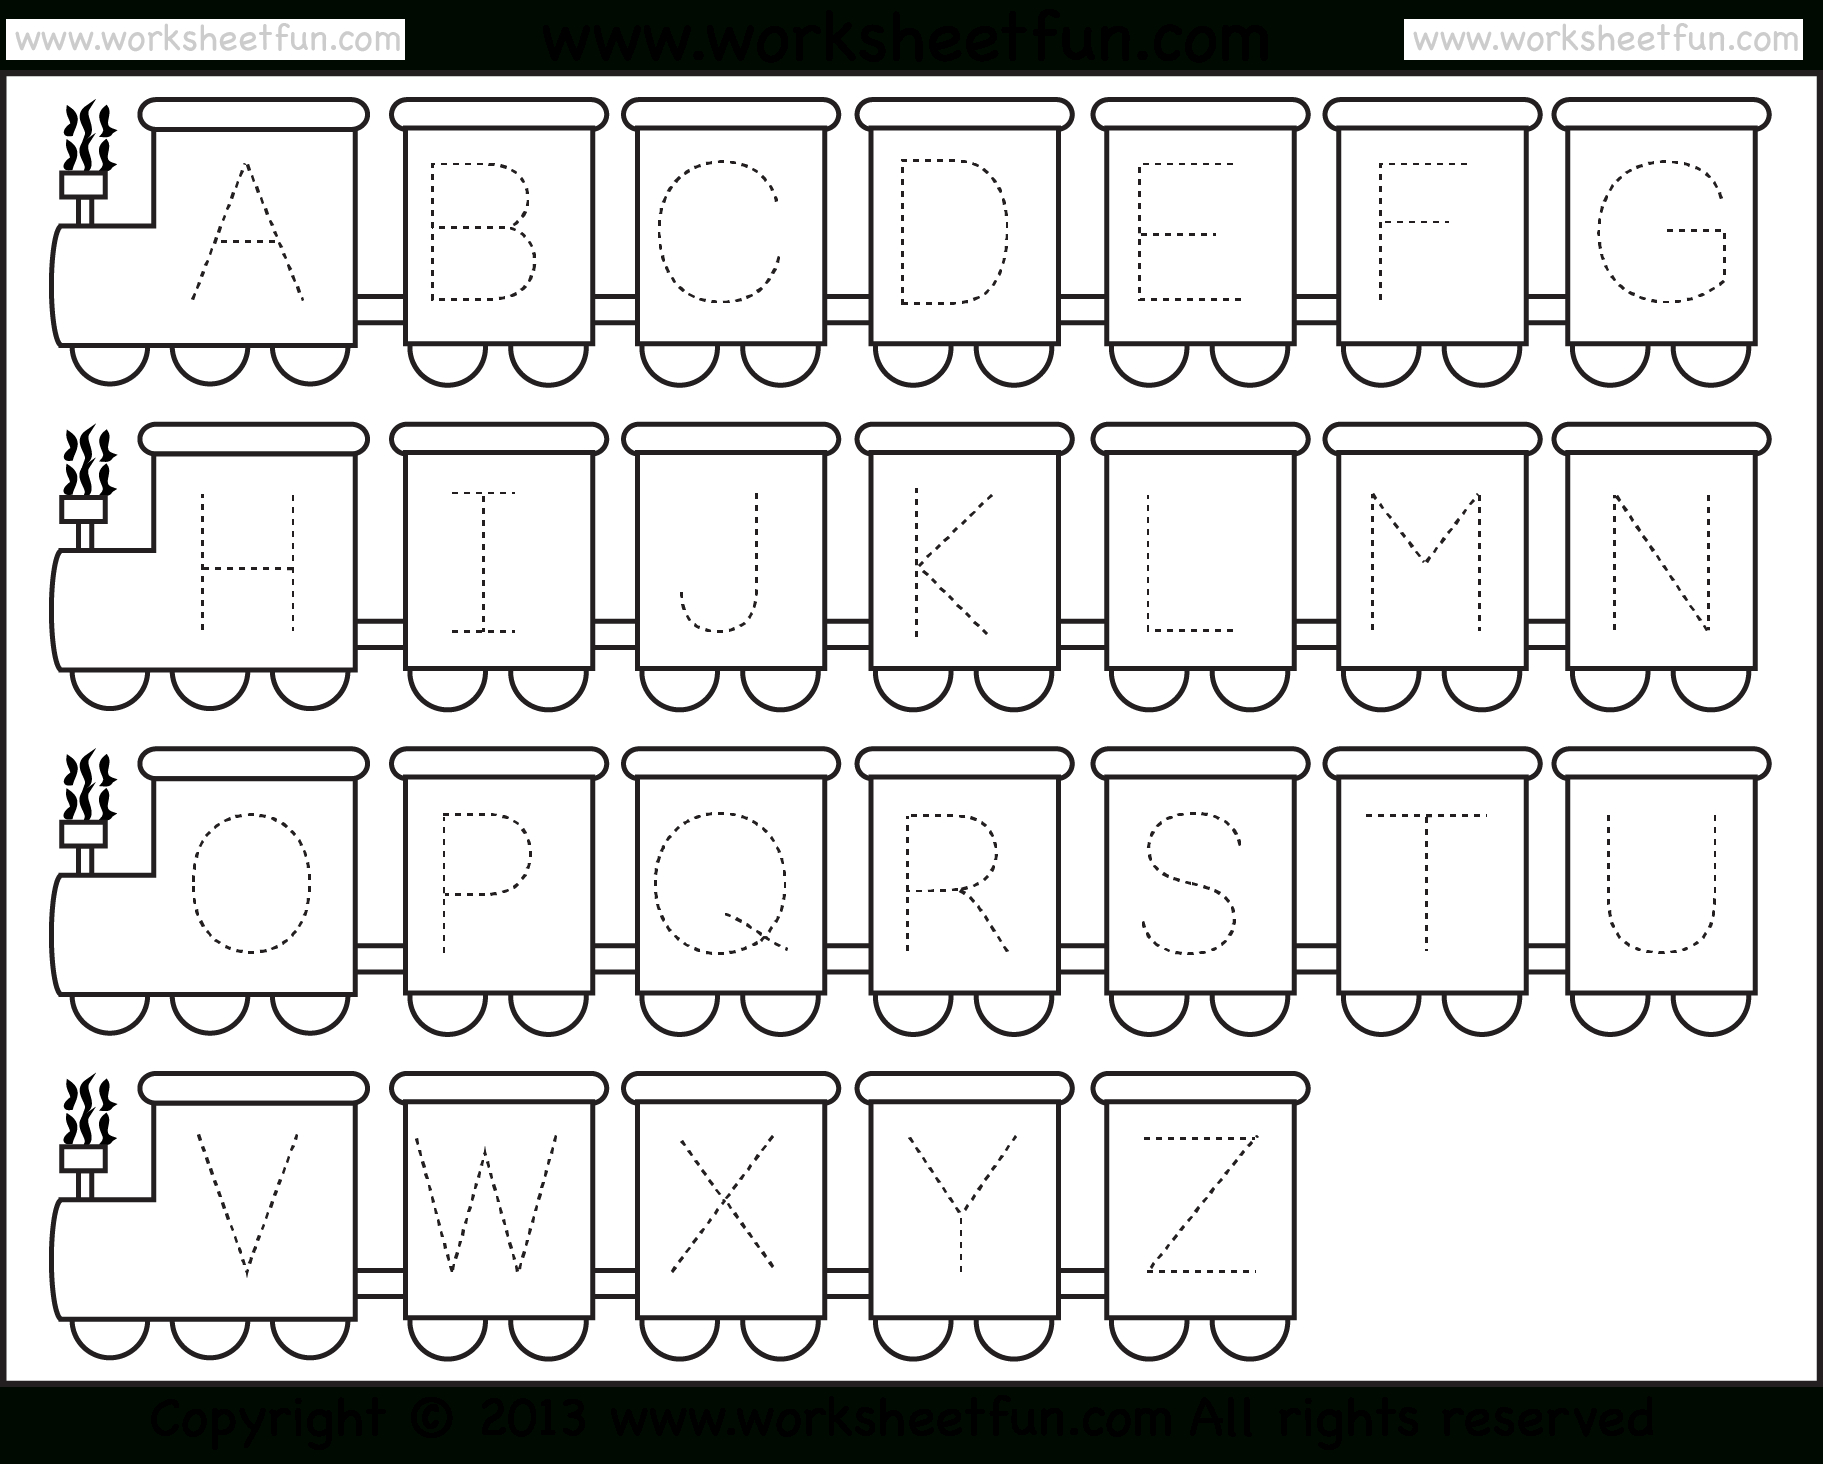 Letter Tracing Worksheet – Train Theme / Free Printable Worksheets | Free Printable Alphabet Worksheets